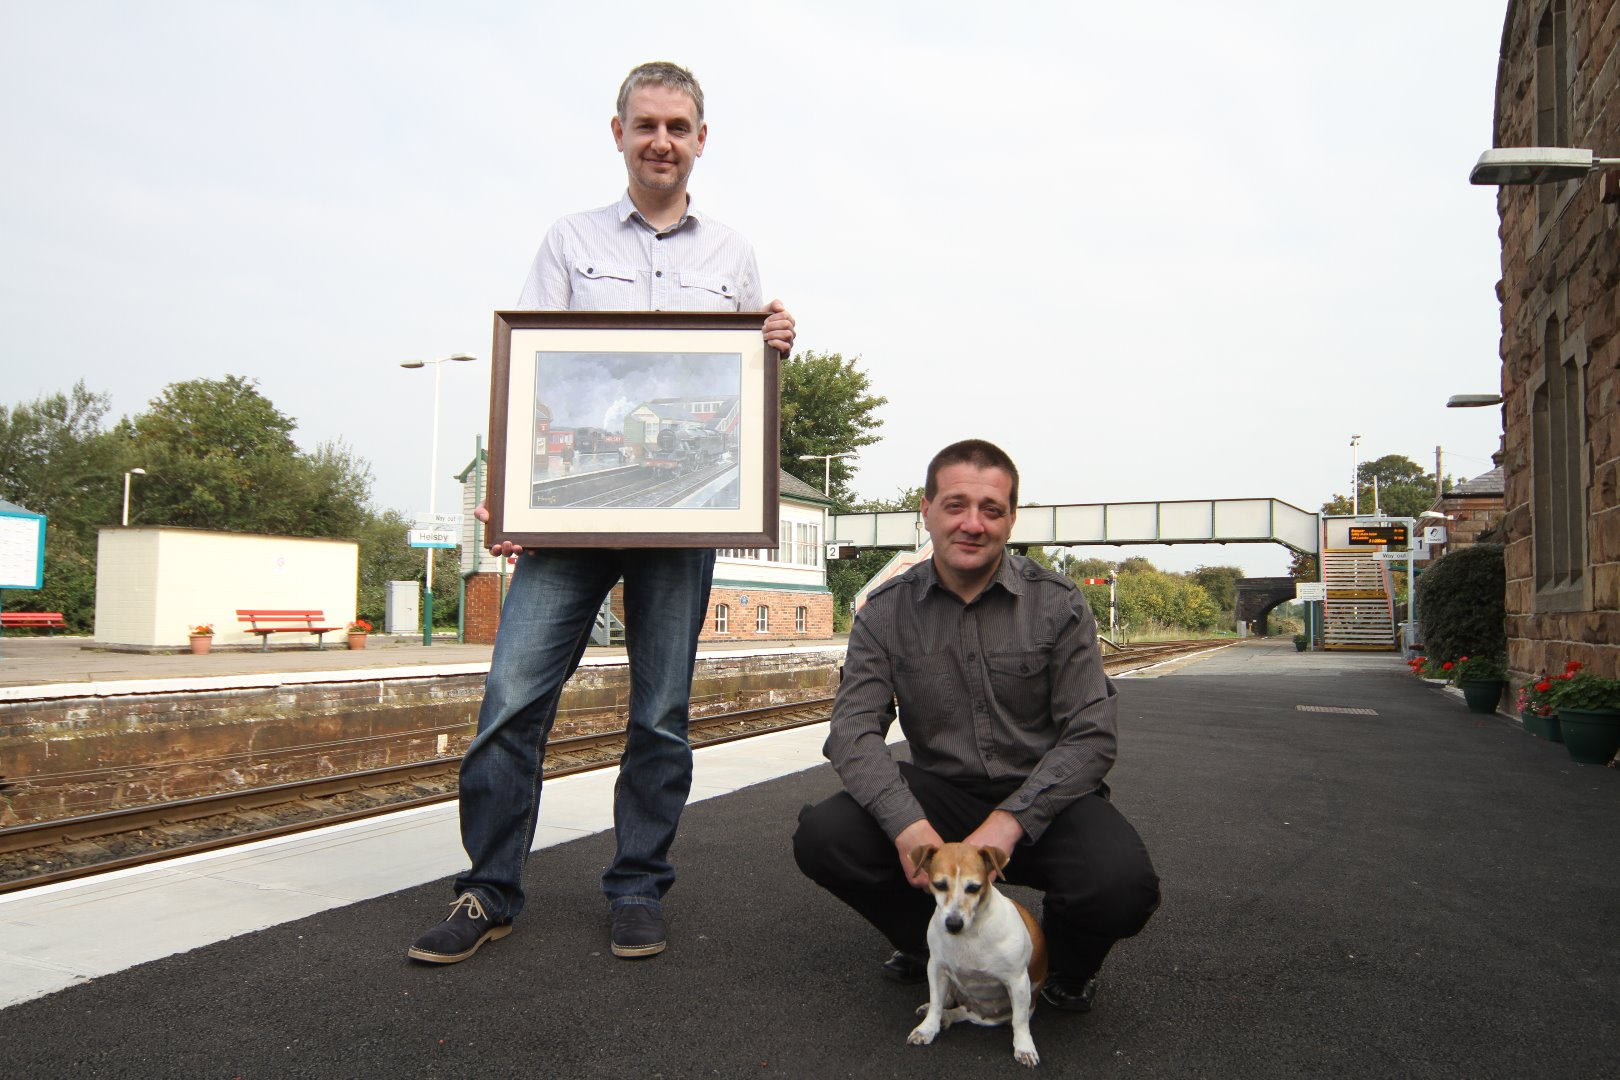 Nick Harling, Ian Whitley  and Pip at Helsby Station